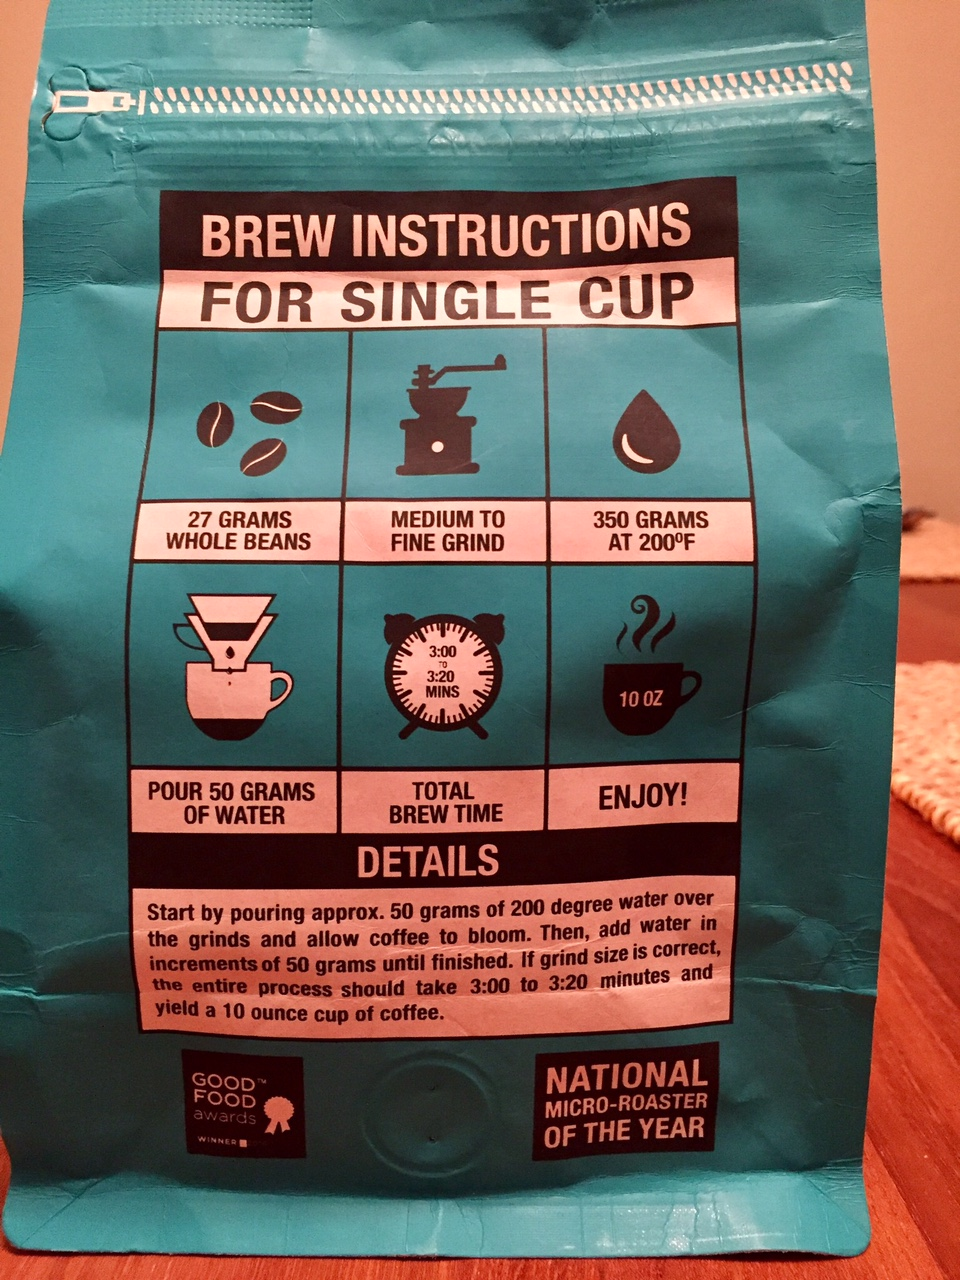 Although I was a little unclear about how much water they were actually recommending, I do appreciate the brewing instructions on the back of the bag.